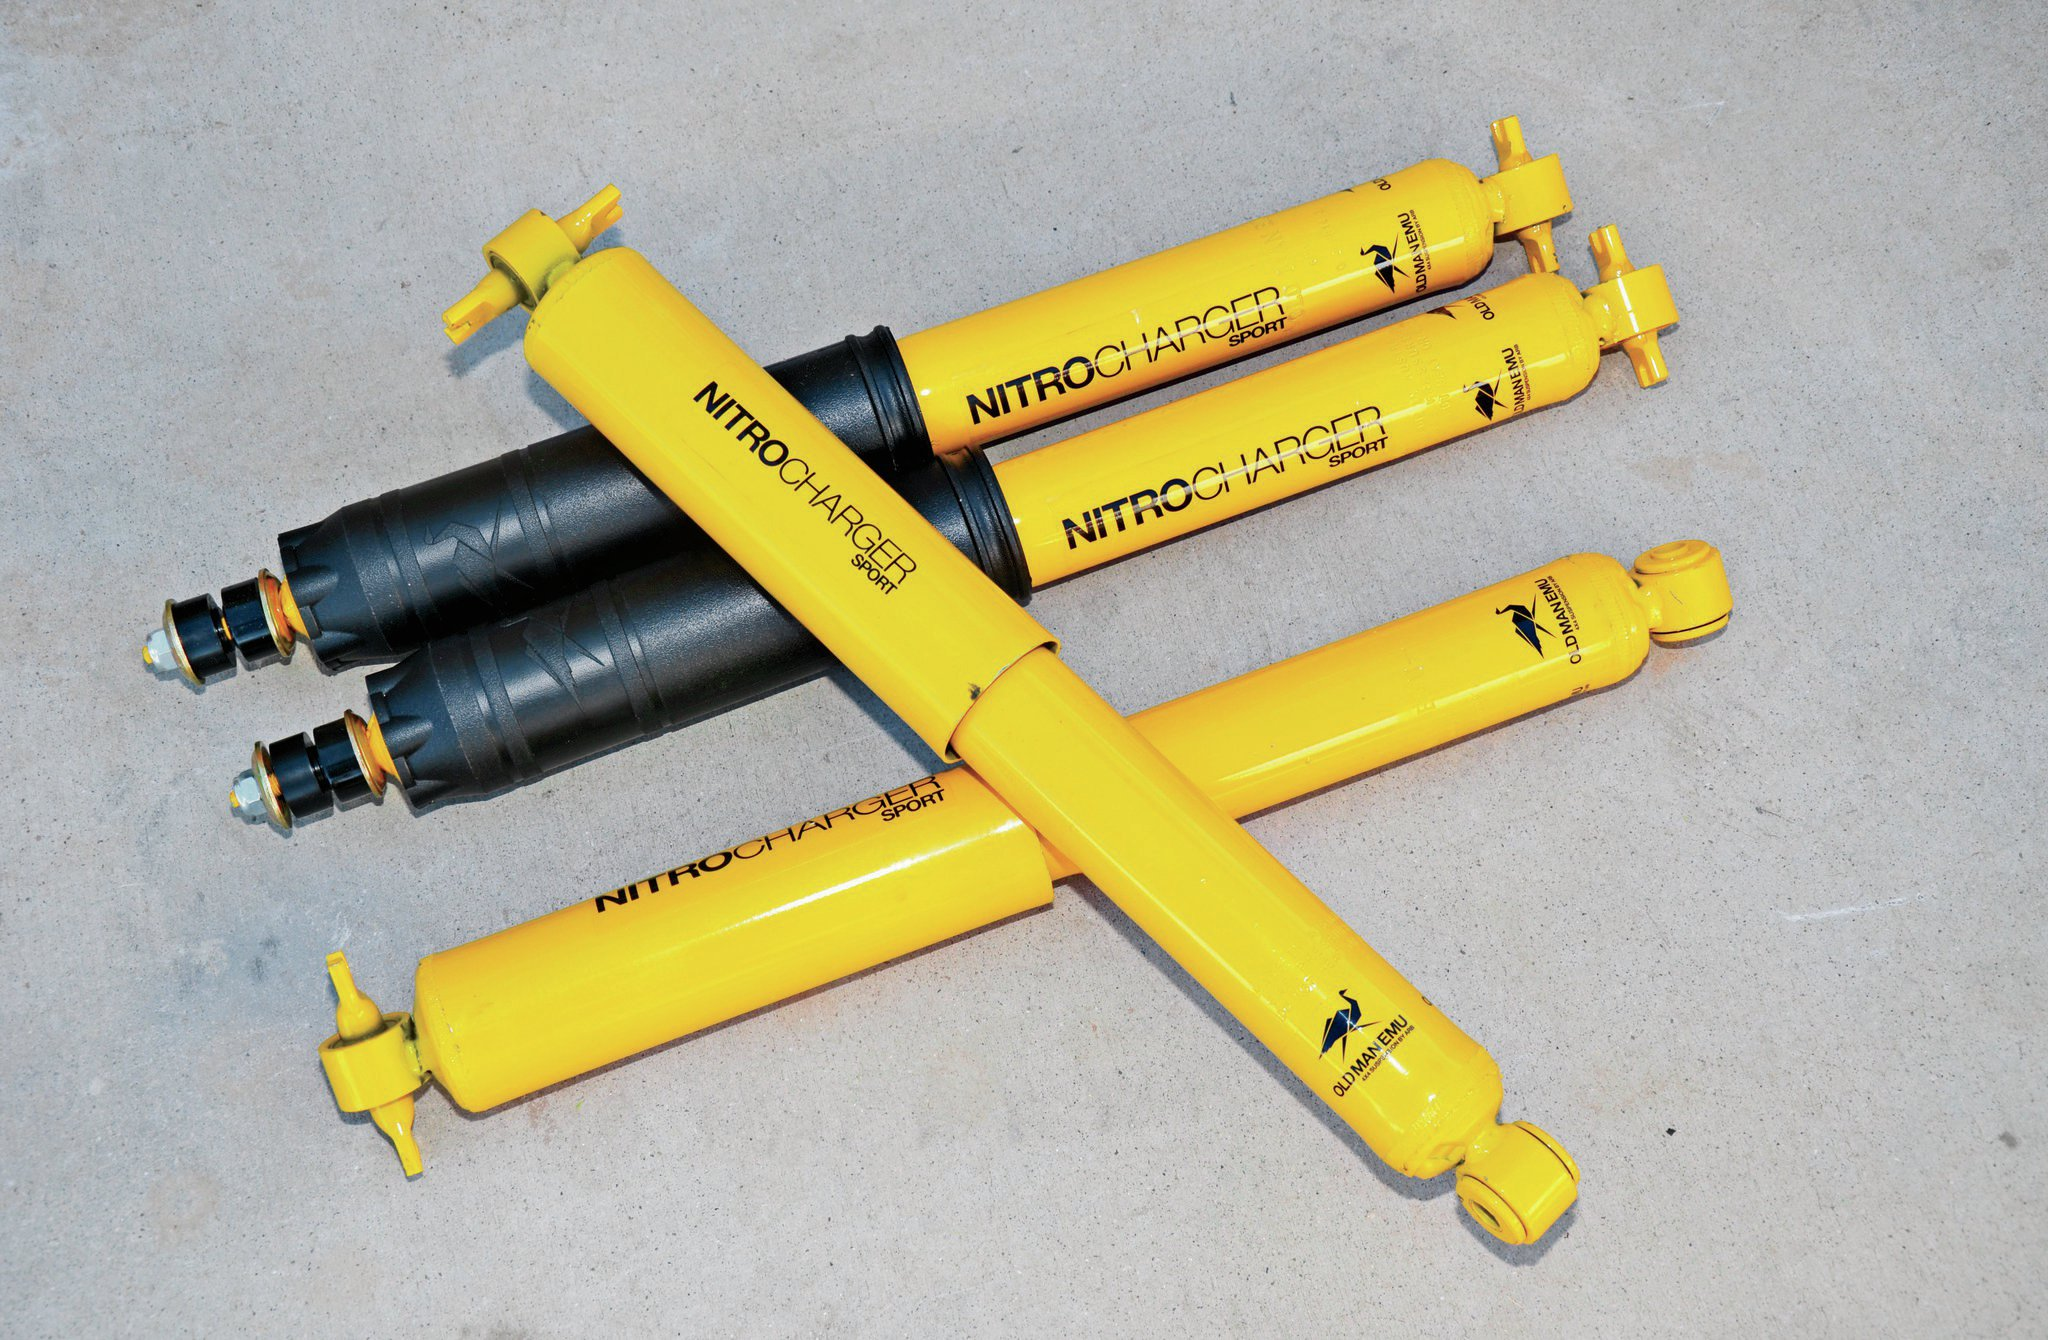 To accompany our Old Man Emu springs, we ordered up a set of OME Nitro shocks. These shocks are built to withstand the rigors, bumps, and seemingly endless washboards of the Australian Outback, so they should do fine for us. We used a set of OME shocks on a Cherokee that we thoroughly abused, and we loved the ride that those shocks provided both on-road and off. Best part is OME warrantees its suspension parts for 3 years.